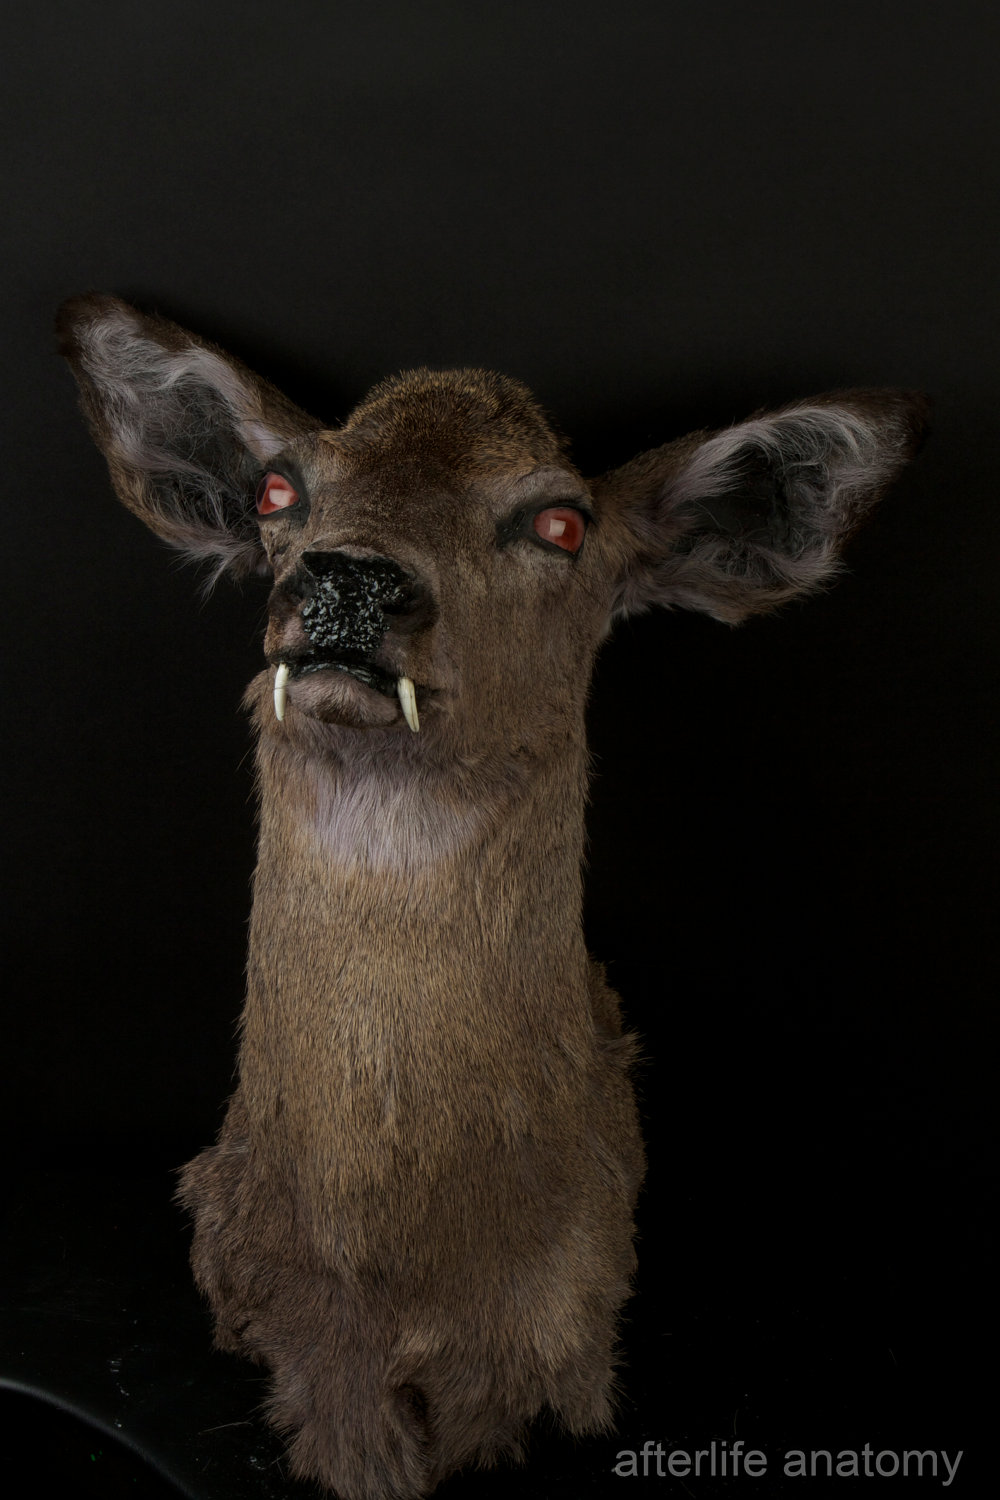 Antlered Taxidermied Fox. Excellent Combination.